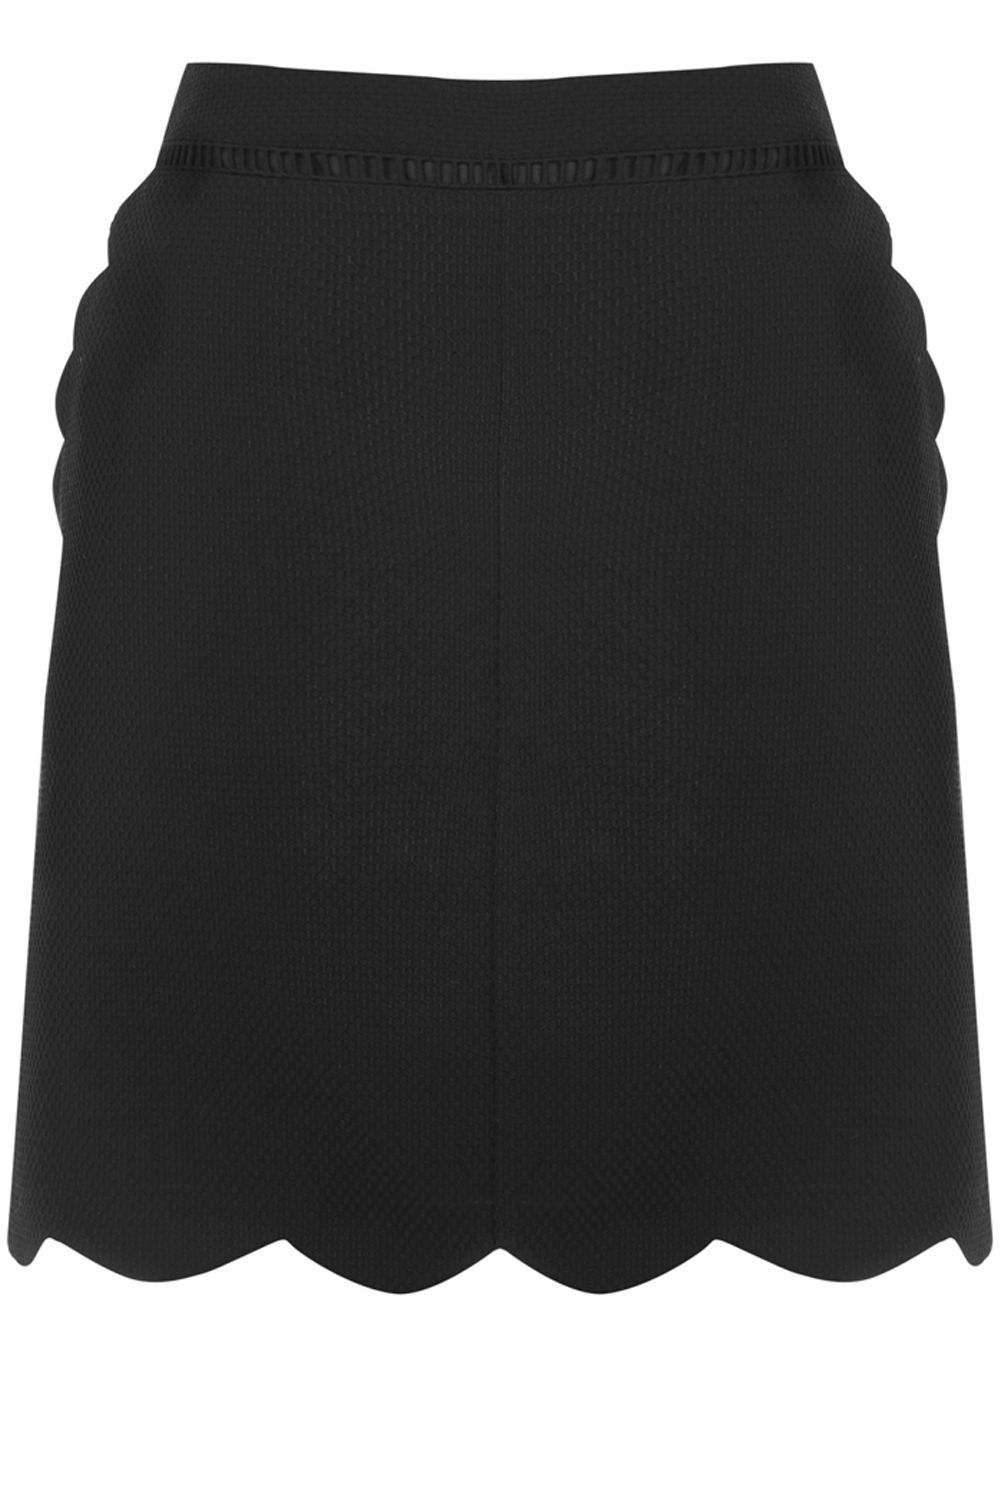 Oasis Scallop Skirt, Black